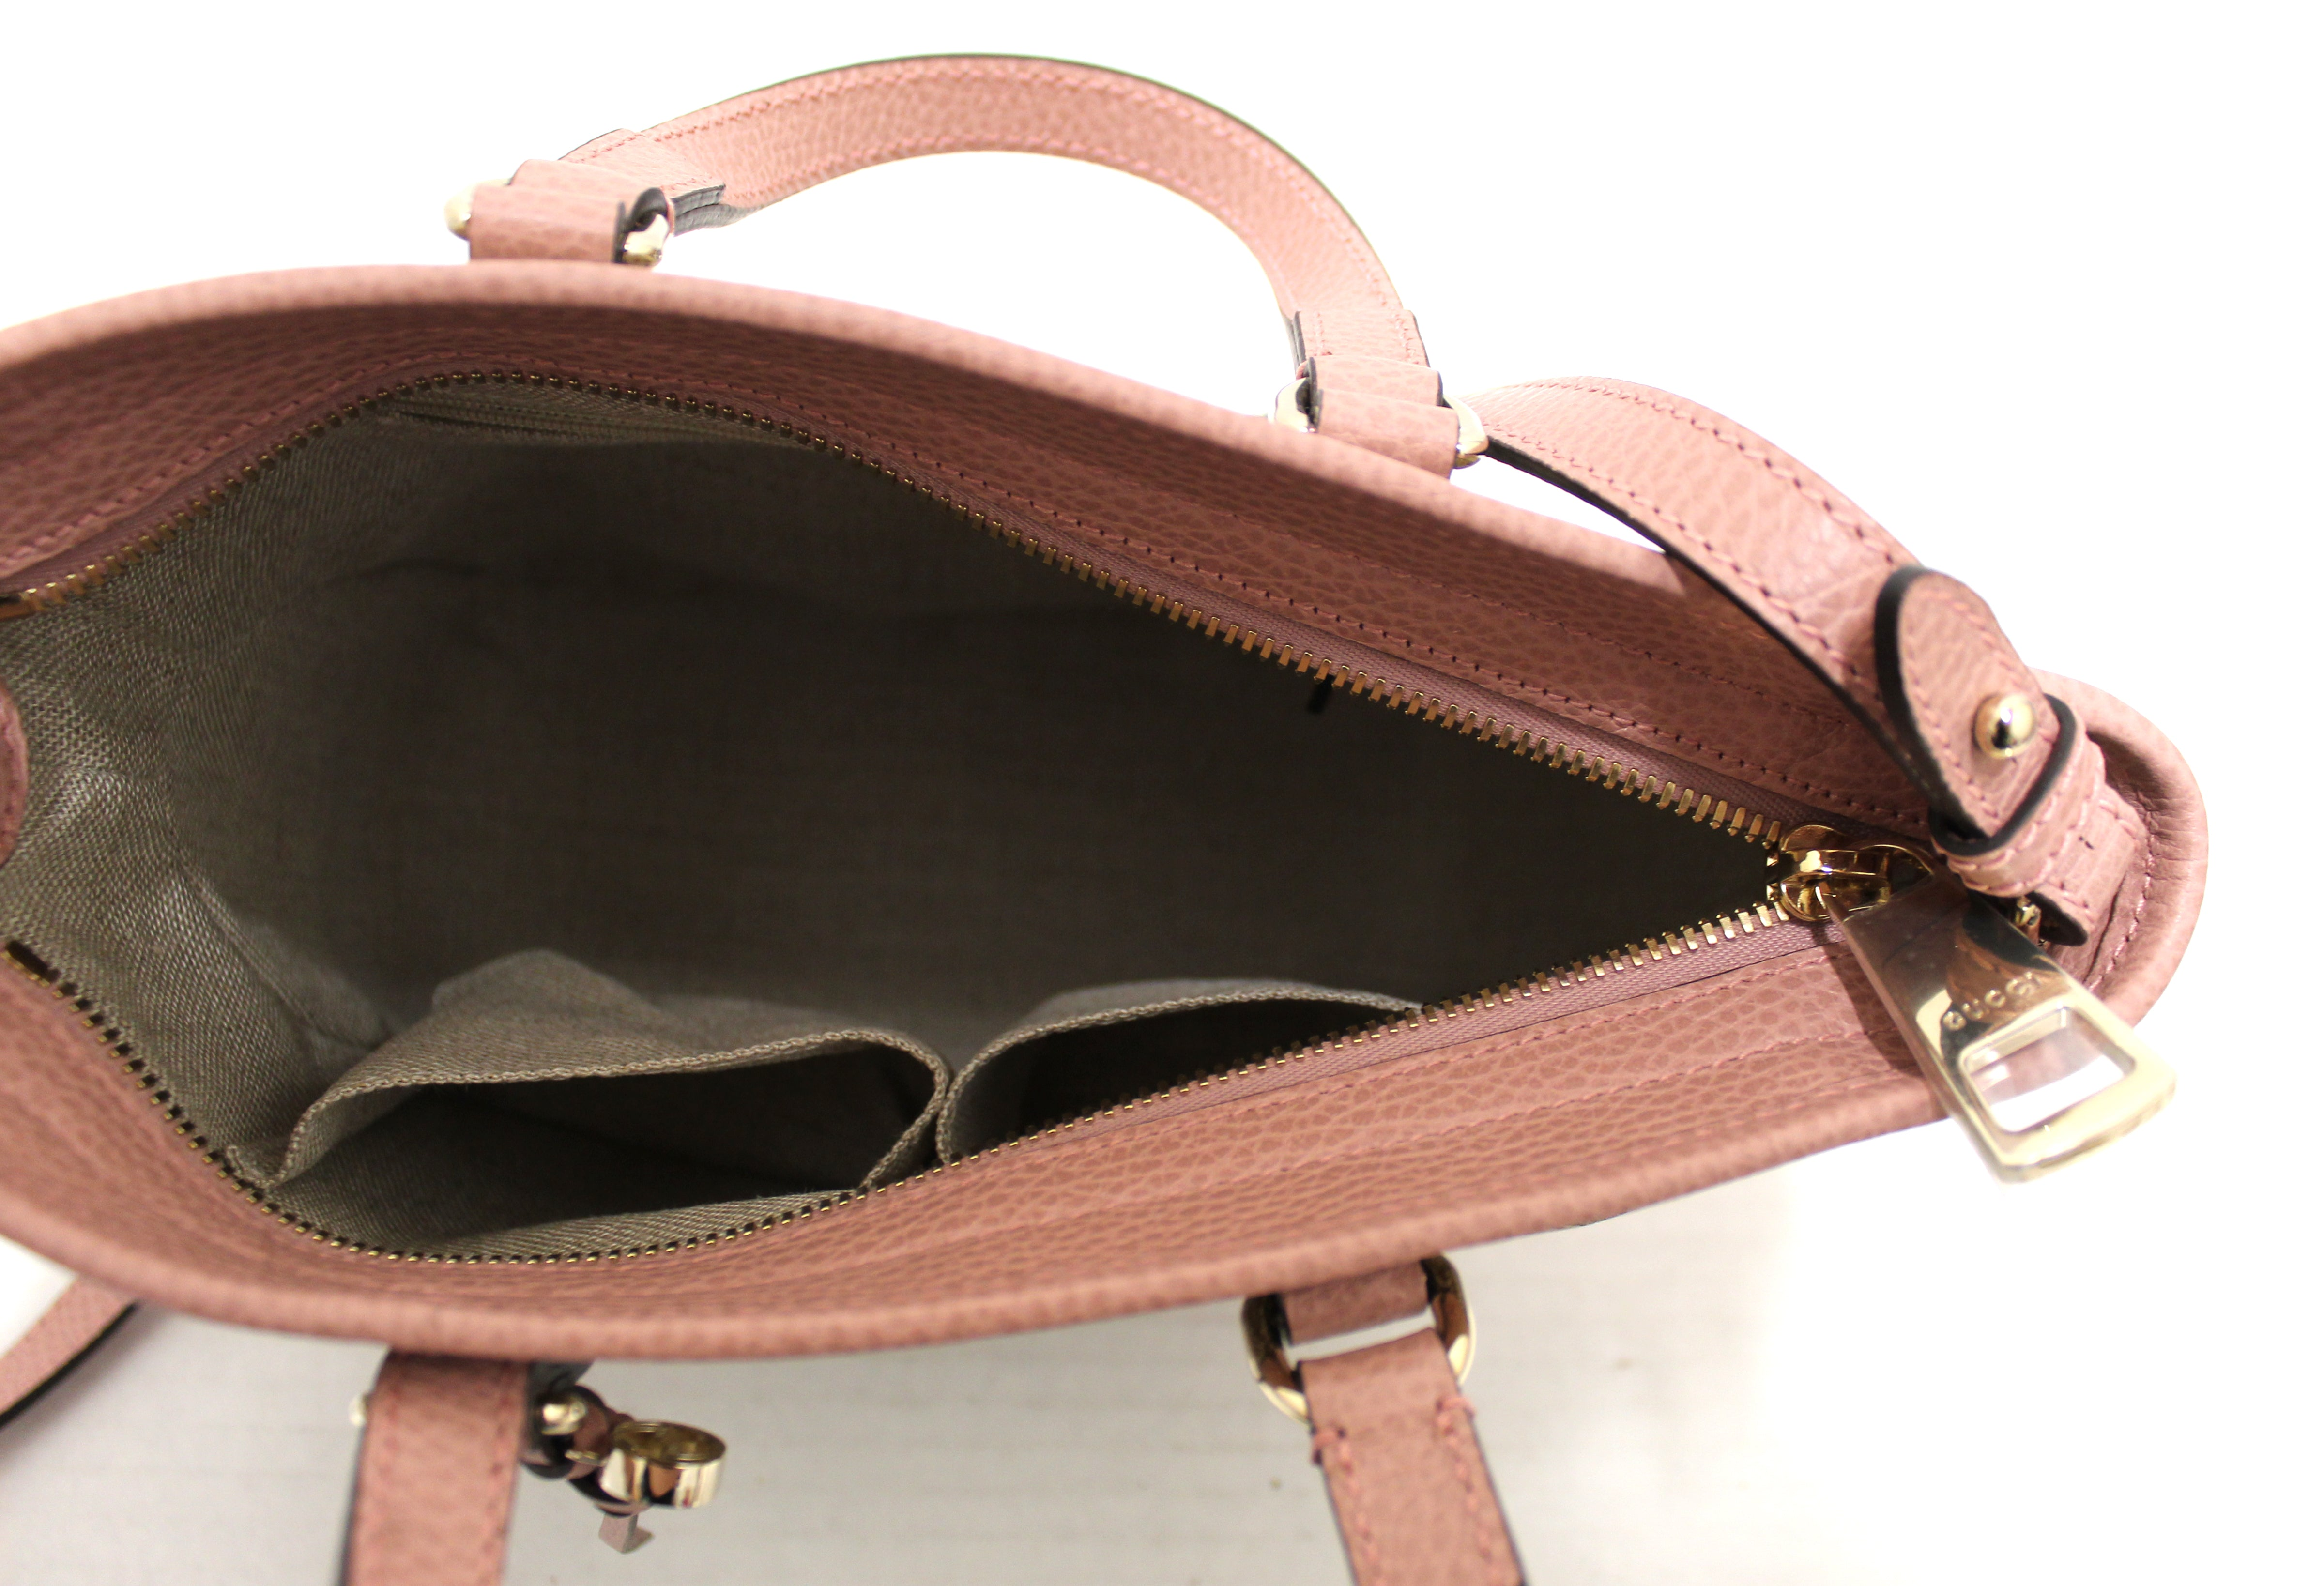 Authentic New Gucci Pink Bree Small Tote Crossbody Hand Bag 449241